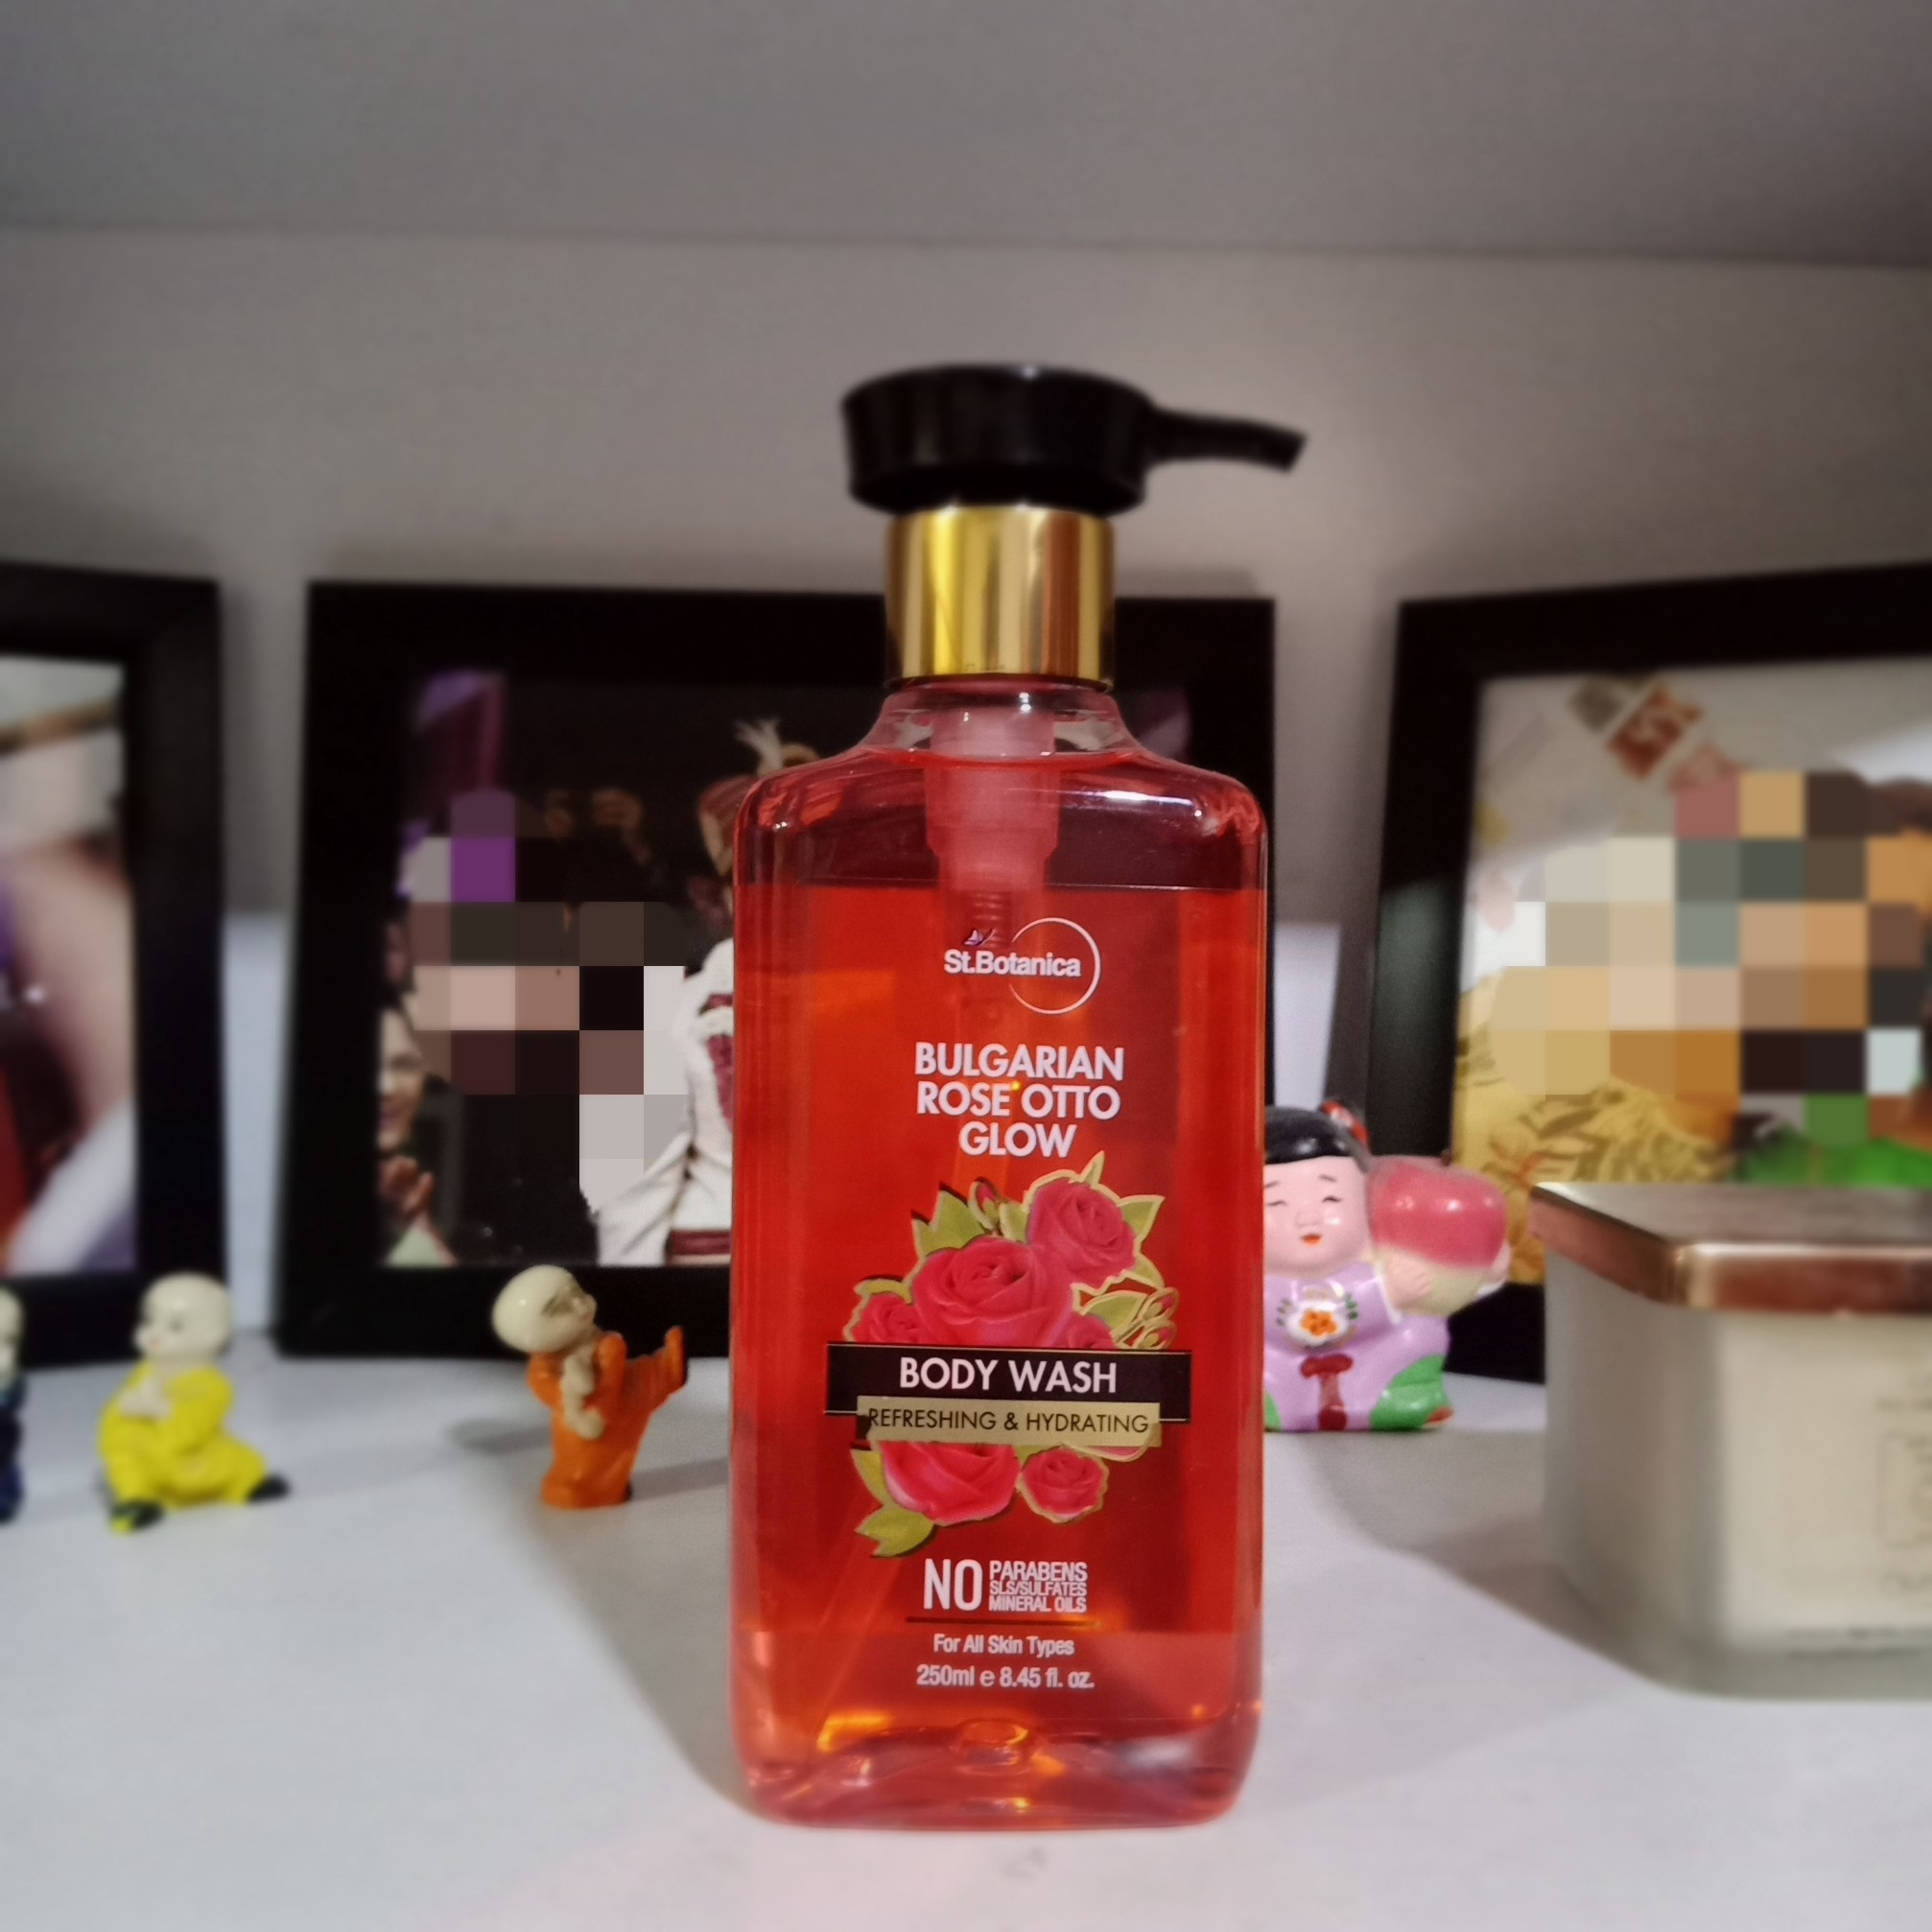 StBotanica Bulgarian Rose Otto Glow Body Wash-Amazing long lasting Rose Fragrance-By khushboogargtorka